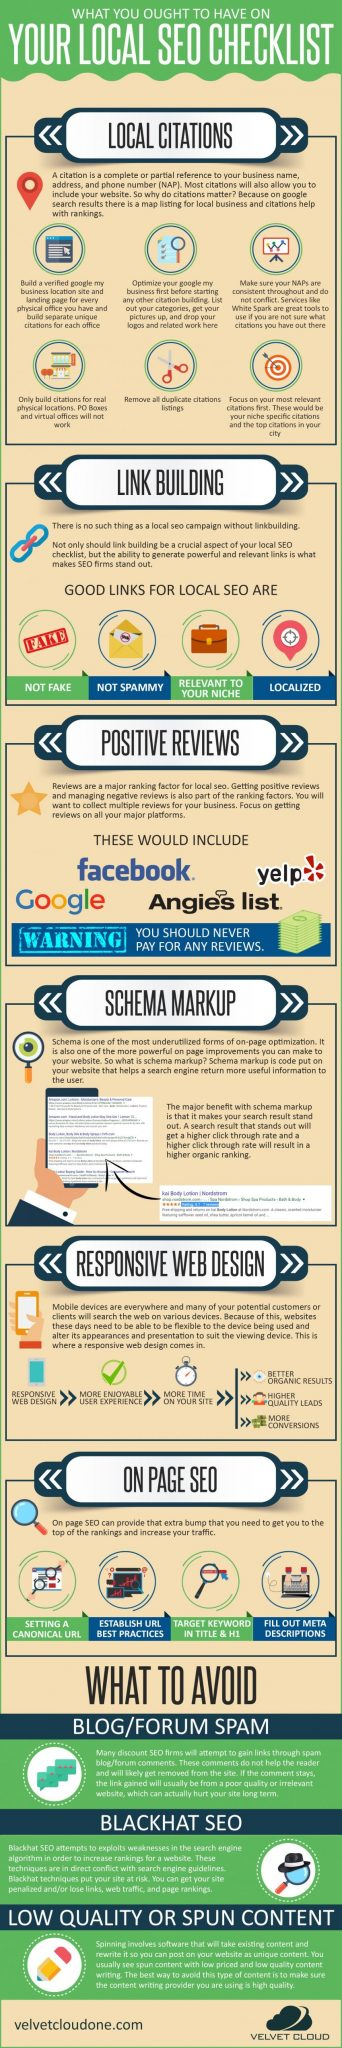 Local SEO: Build Your Local Business with This Checklist